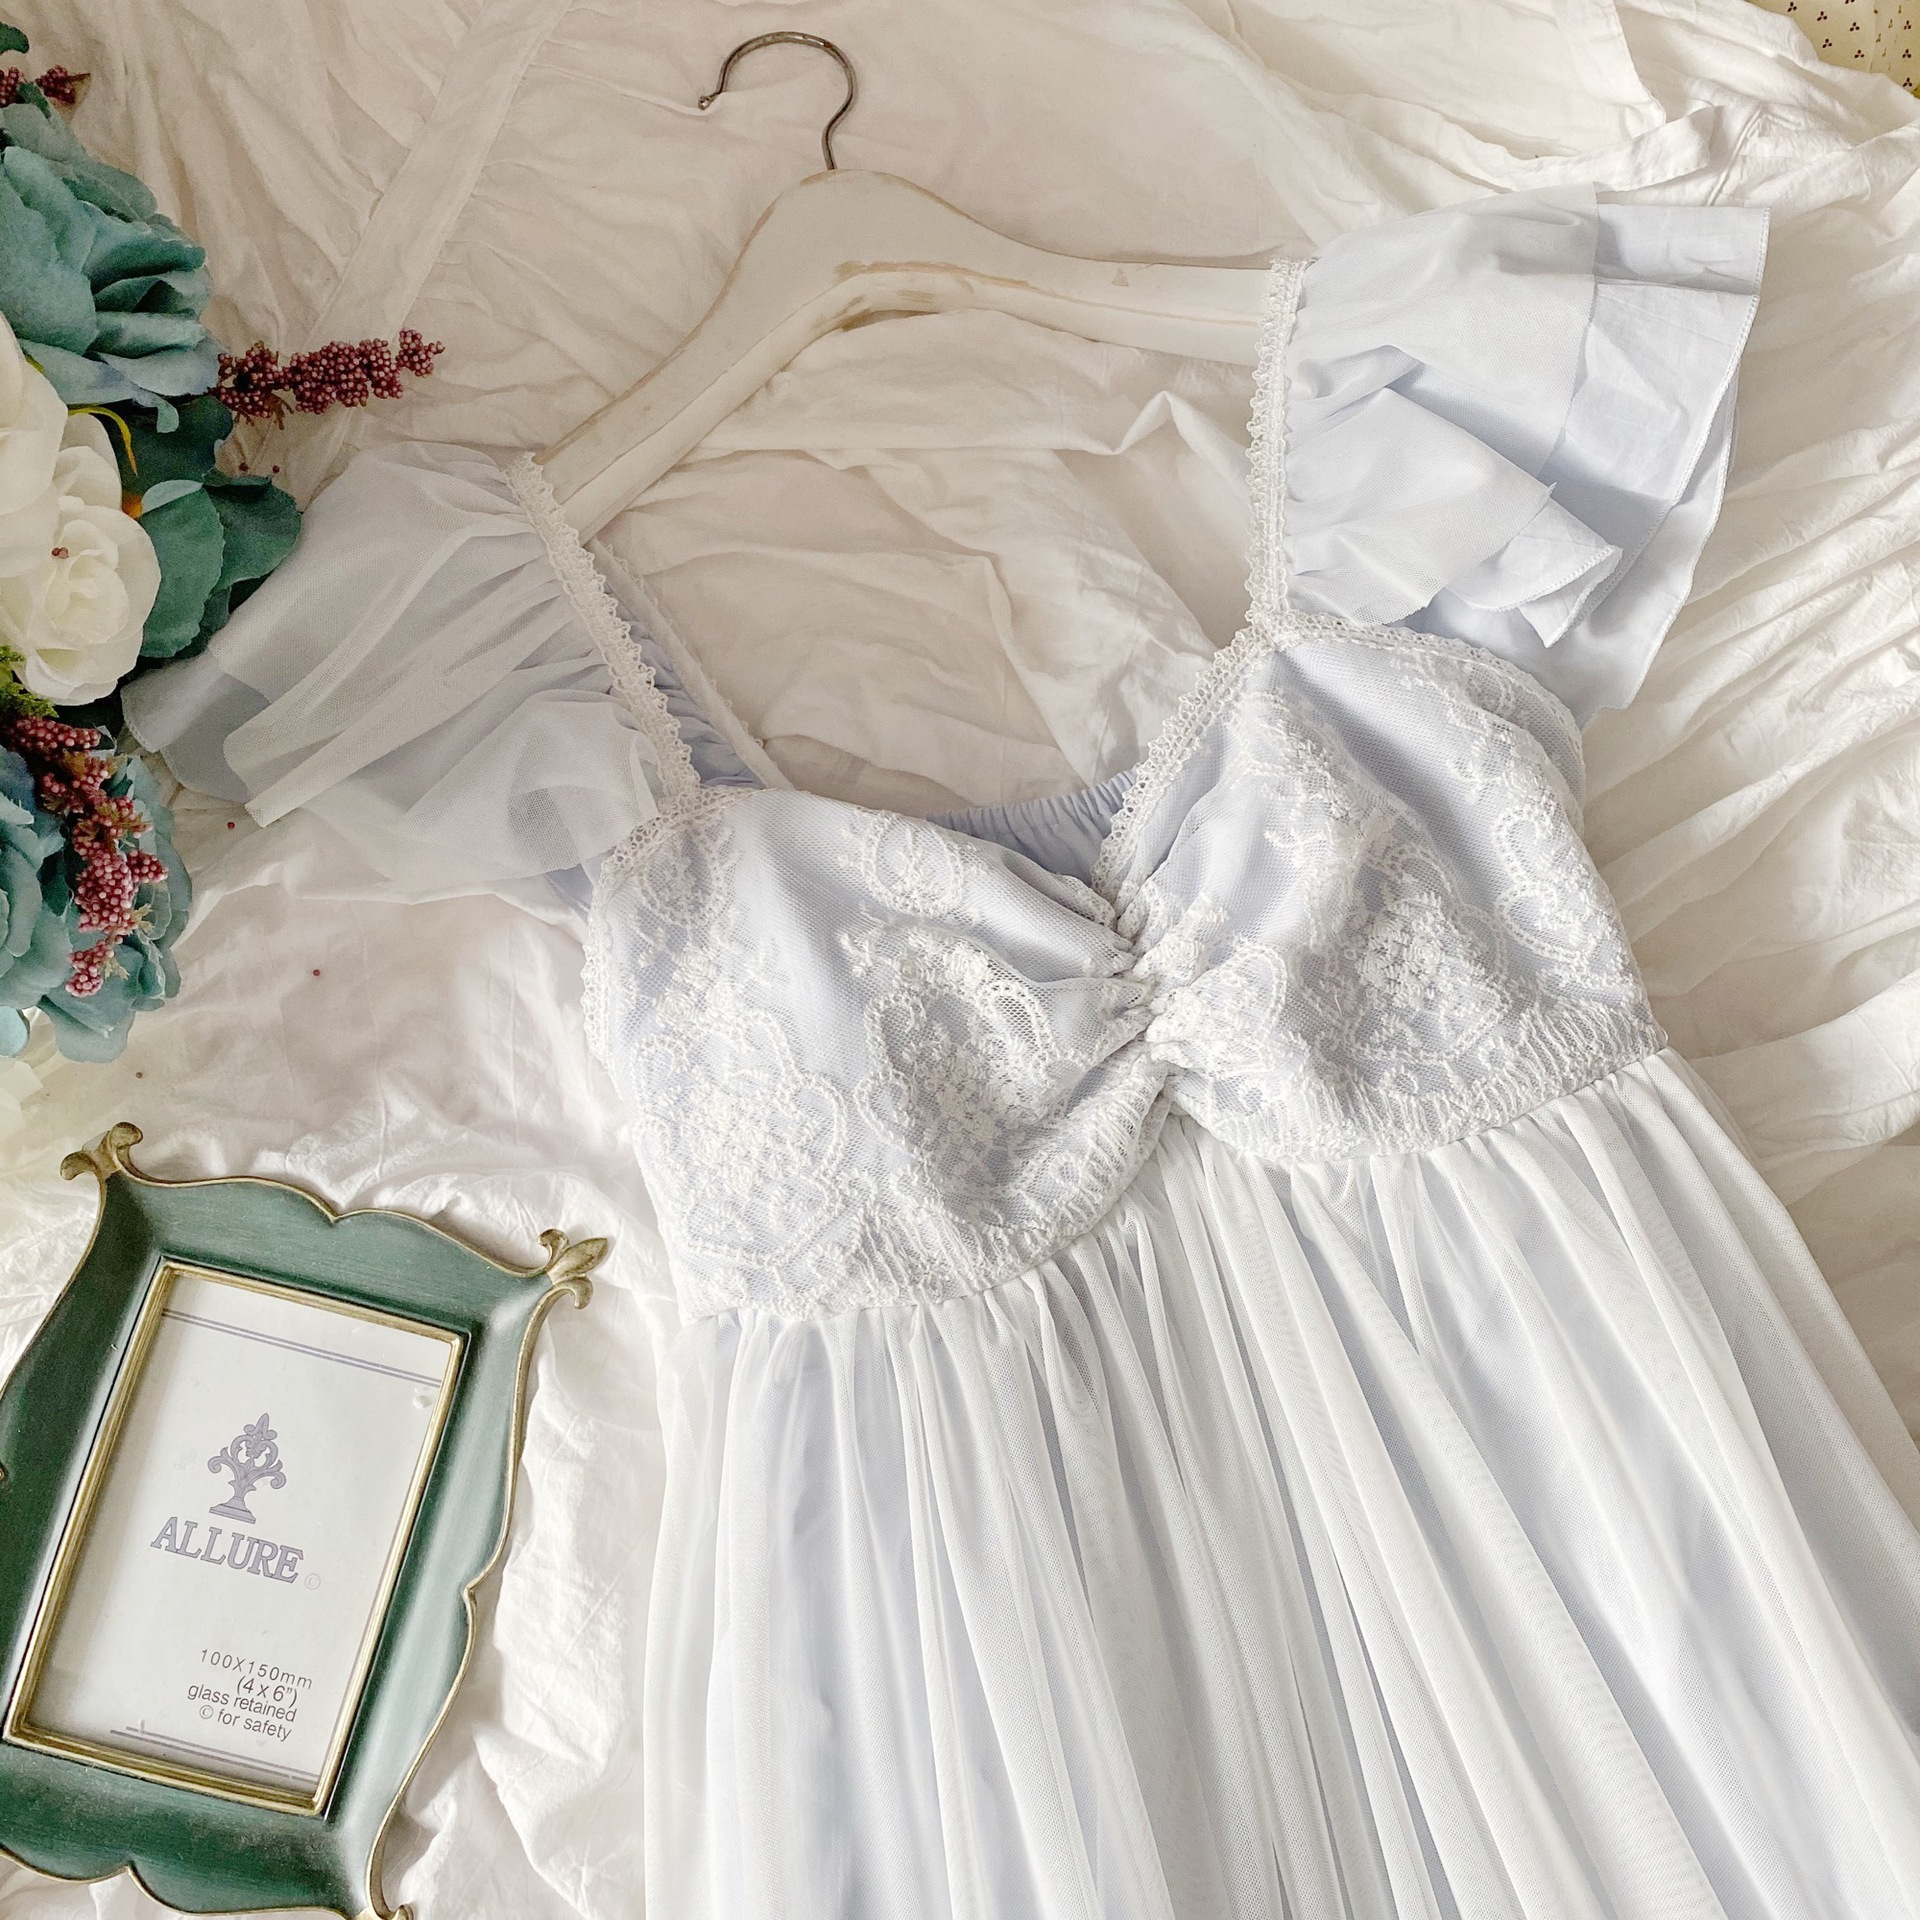 Delicate Summer Sleeveless White Lace Cotton Women's Nightgowns Vintage Princess Female Loose Long Sleepwear Sexy Night Dress